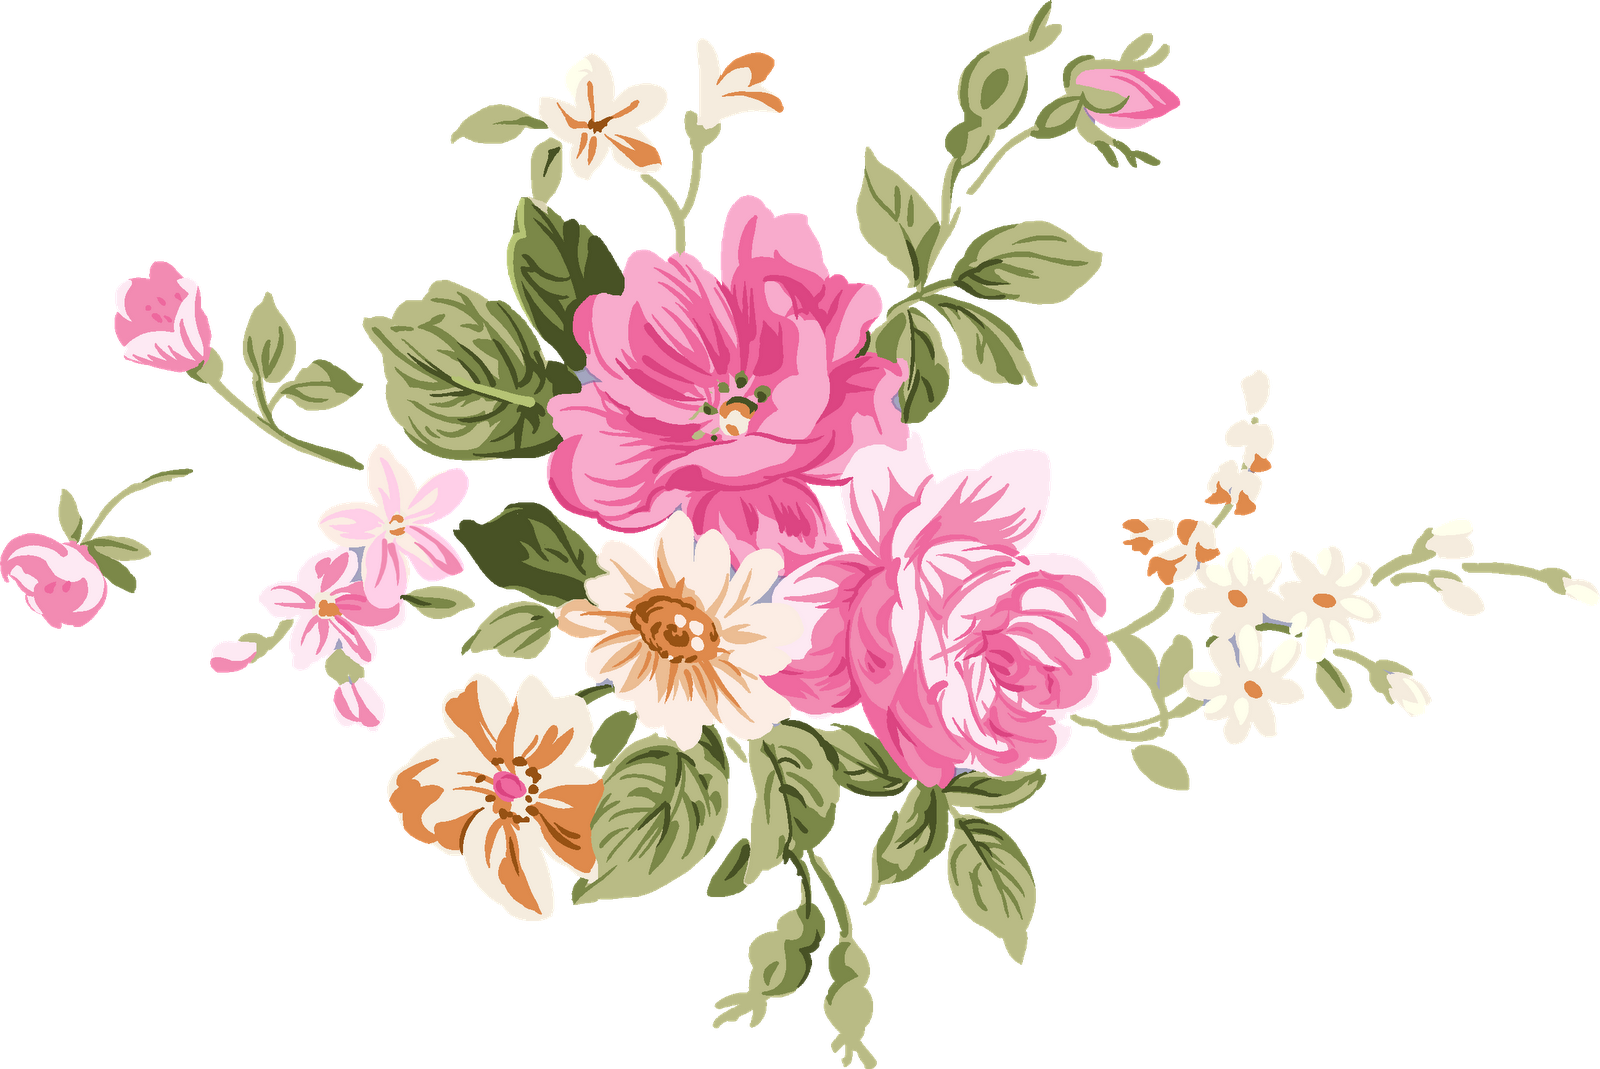 Chinese flowers png. Flower image